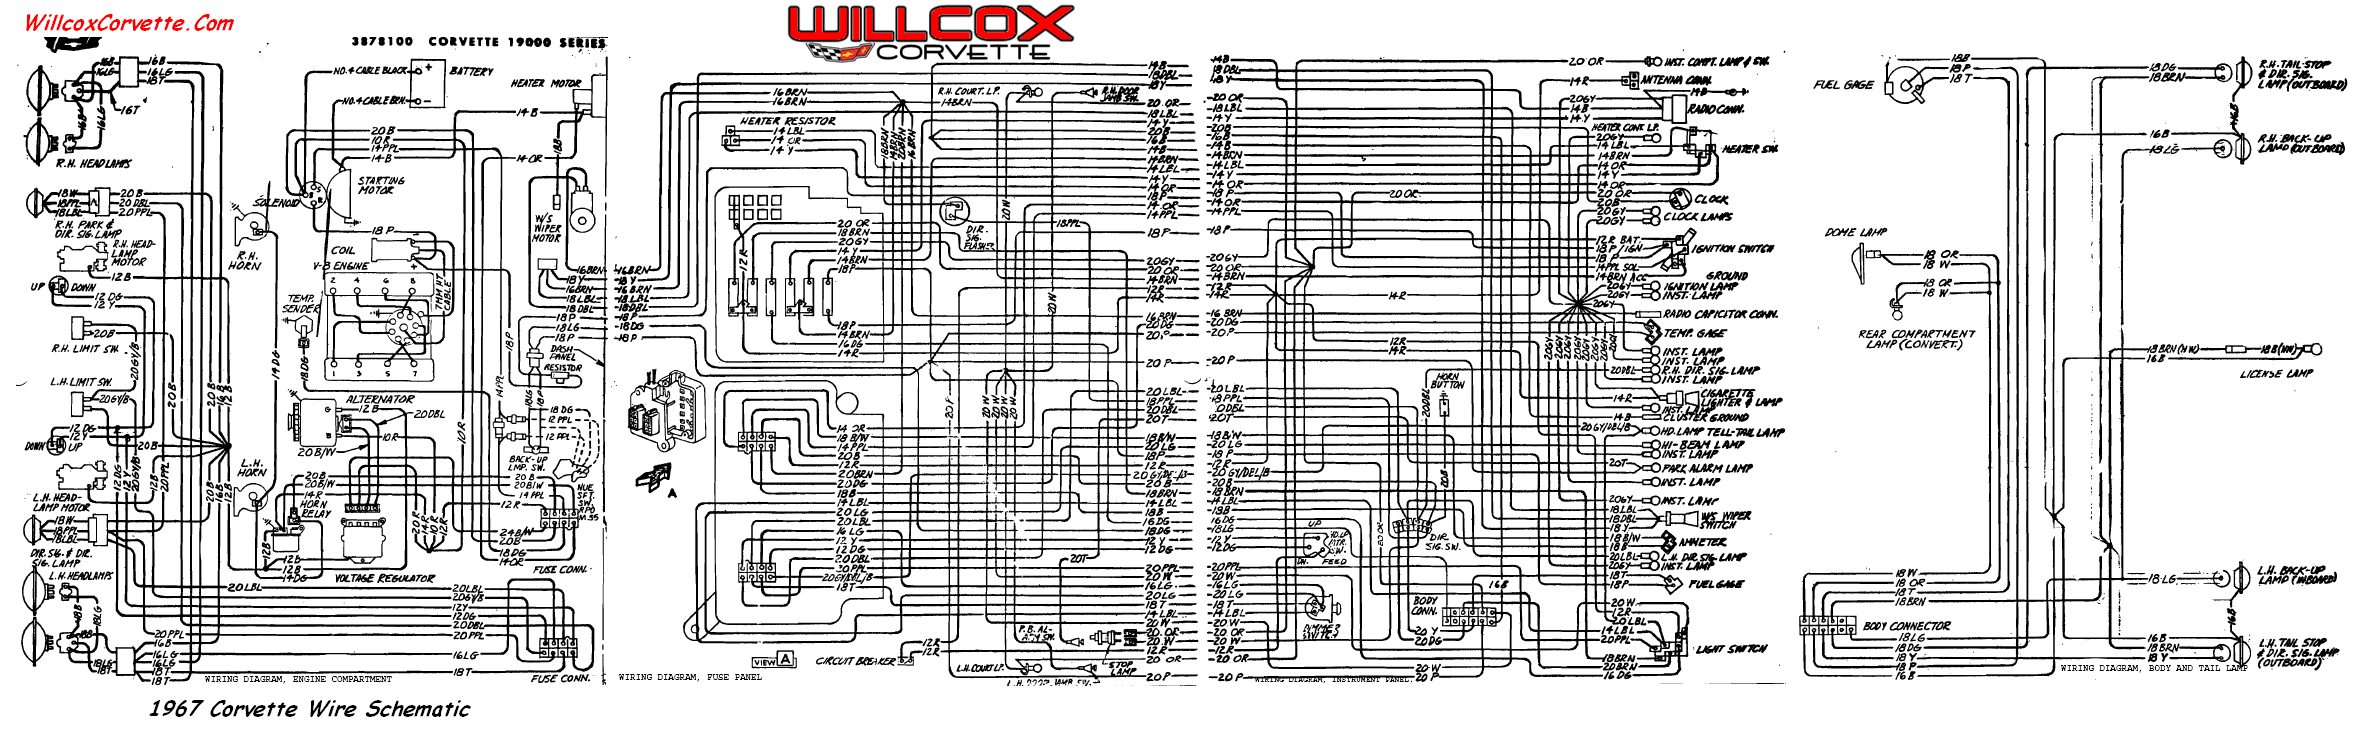 1972 corvette fuse panel diagram wiring diagram rh 93 raepoppweiss de